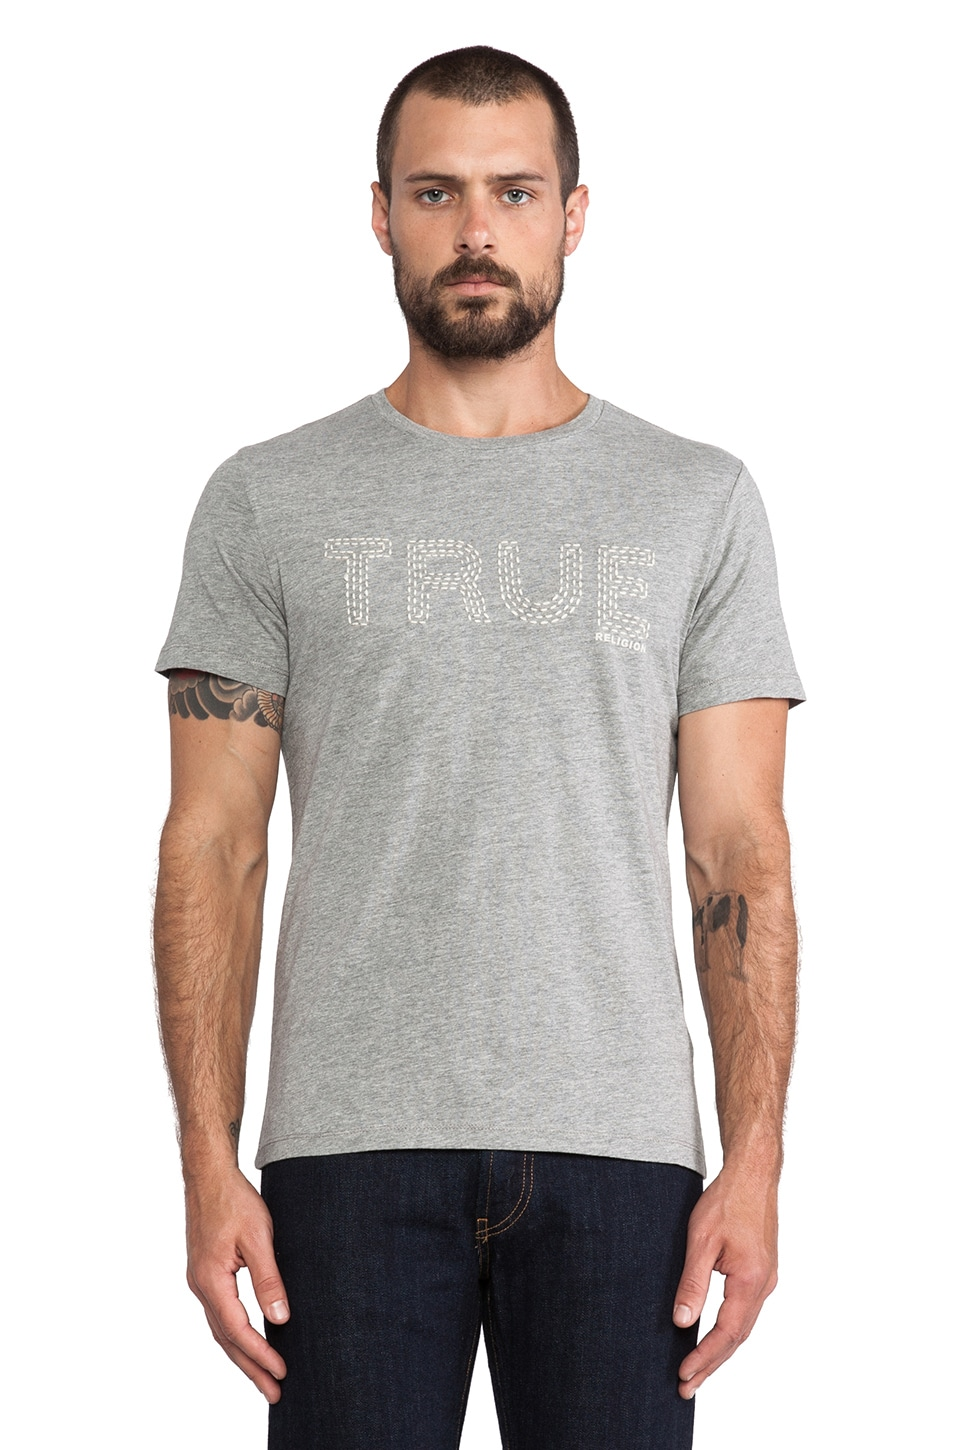 True Religion True Stitched Tee in Heather Grey